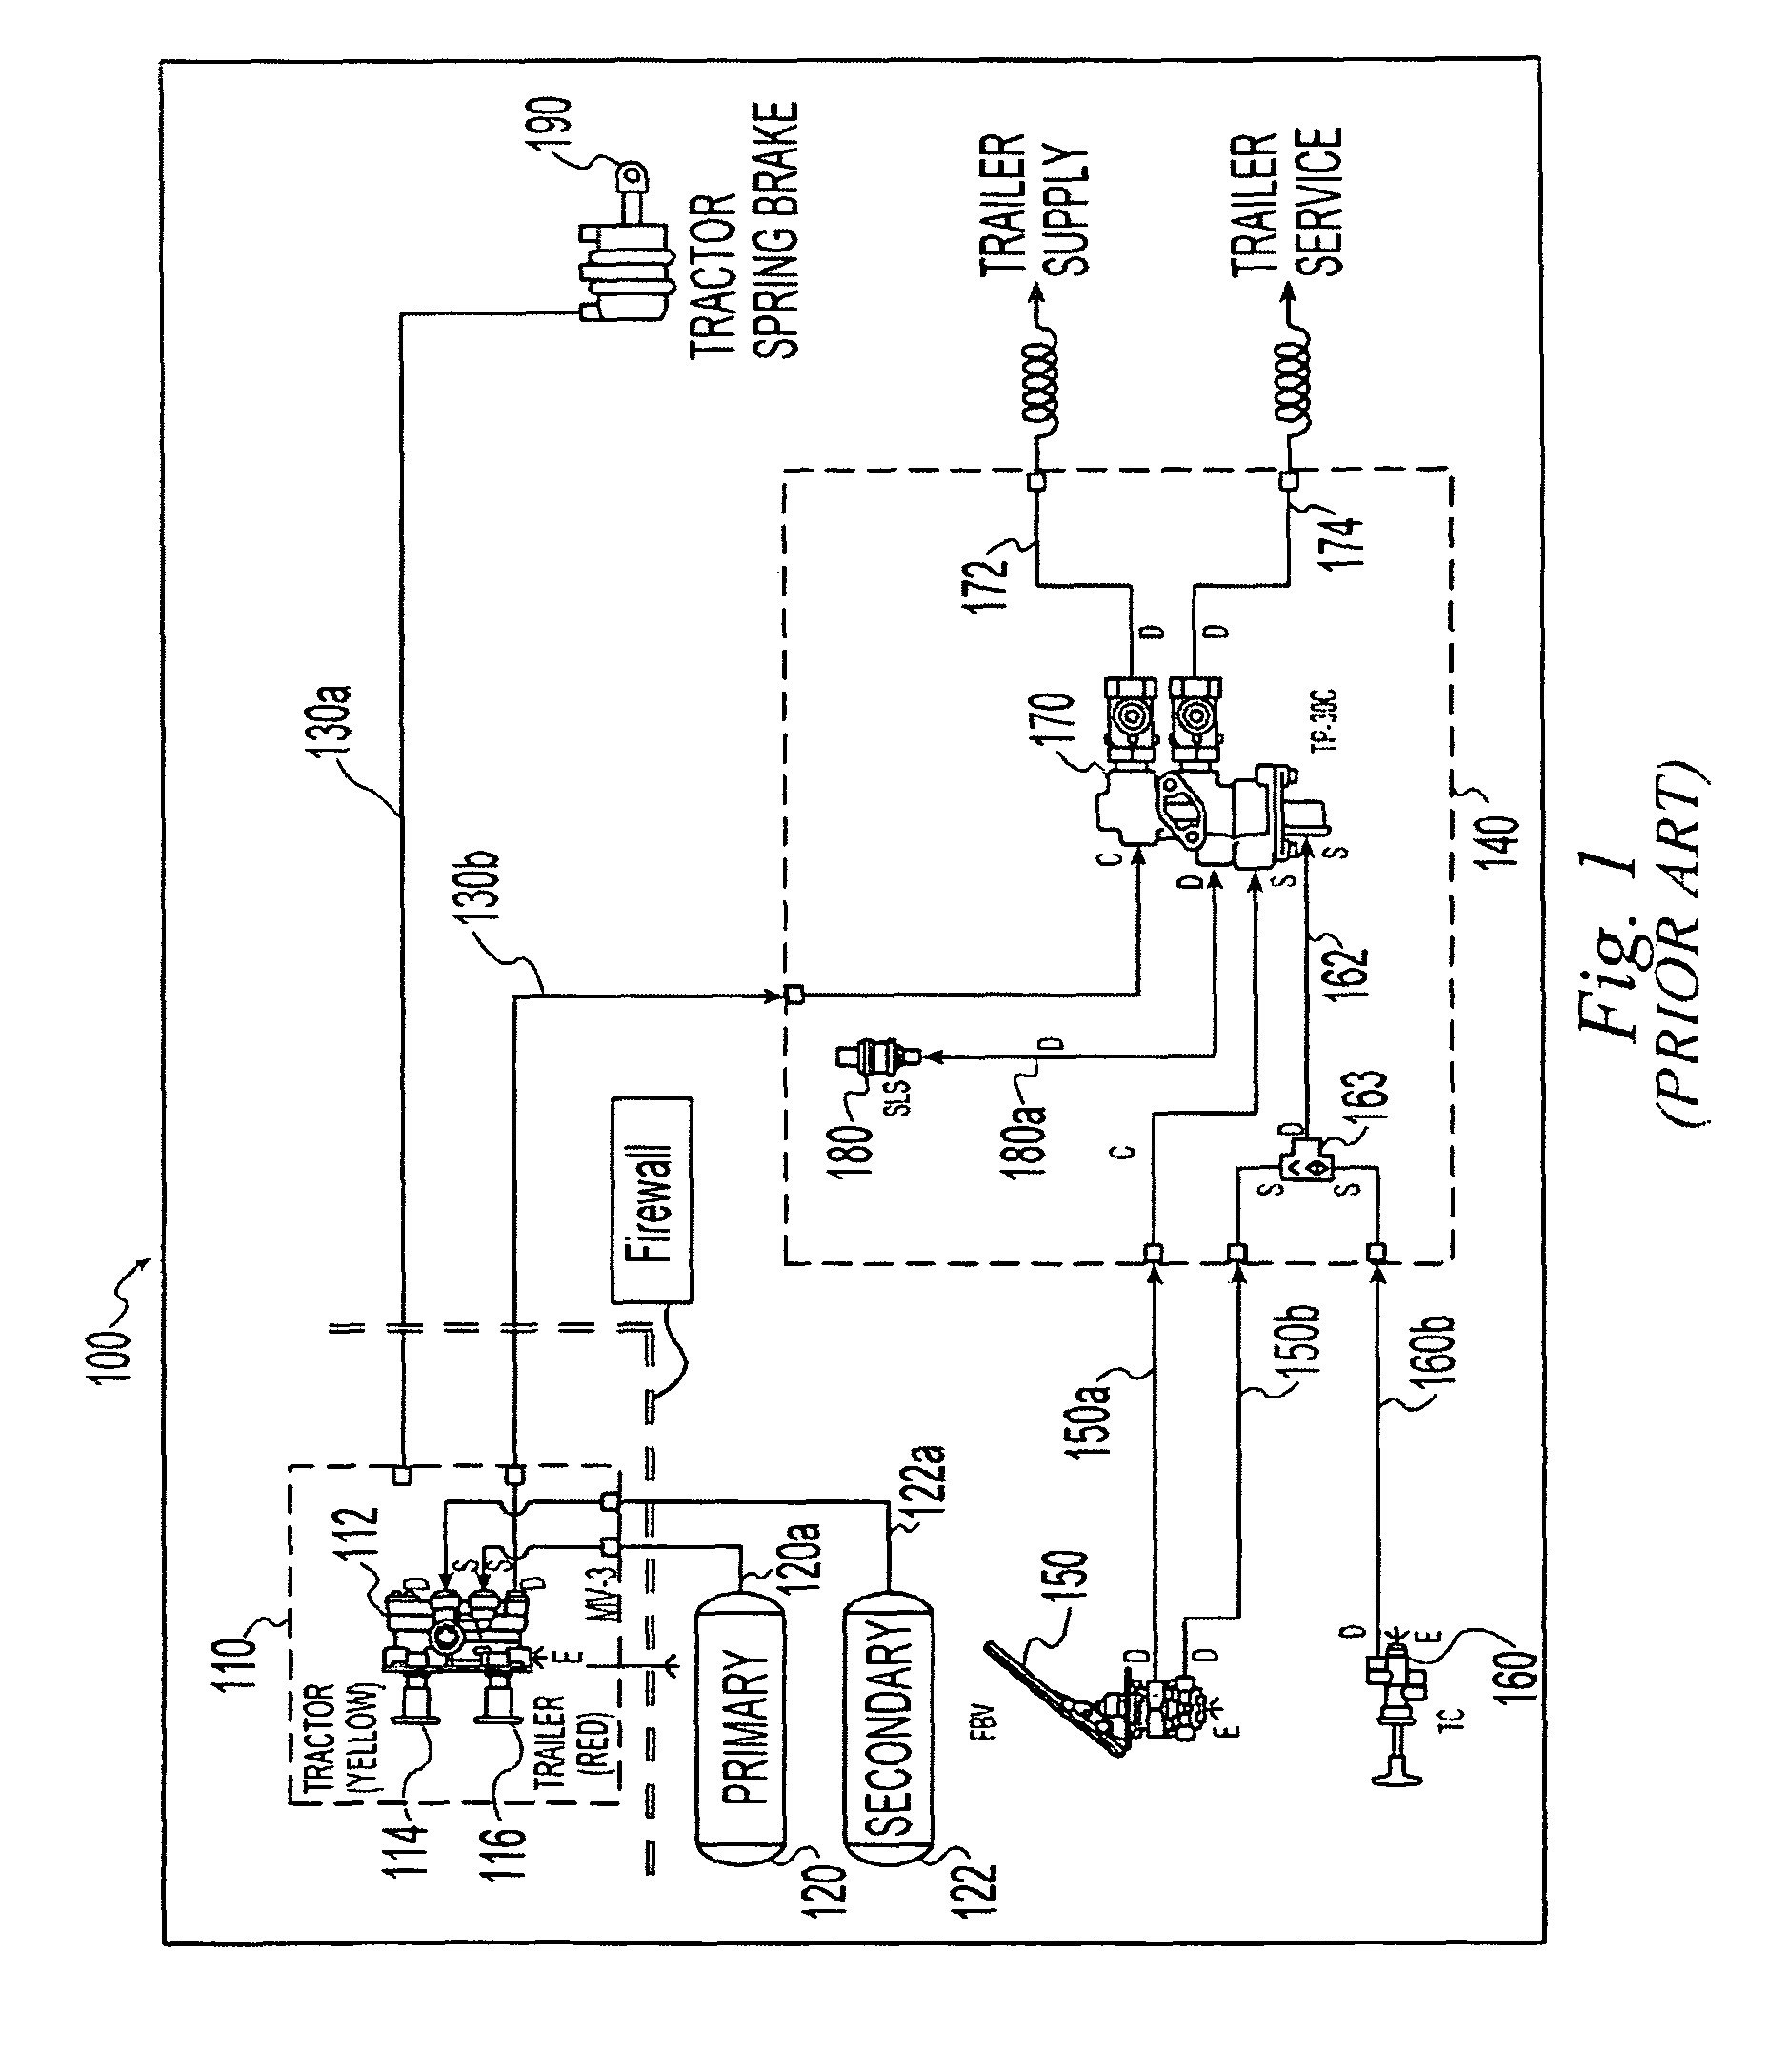 free wiring diagram Wabco Abs Wiring Diagram Unique Bendix Abs Troubleshooting Image of Wiring